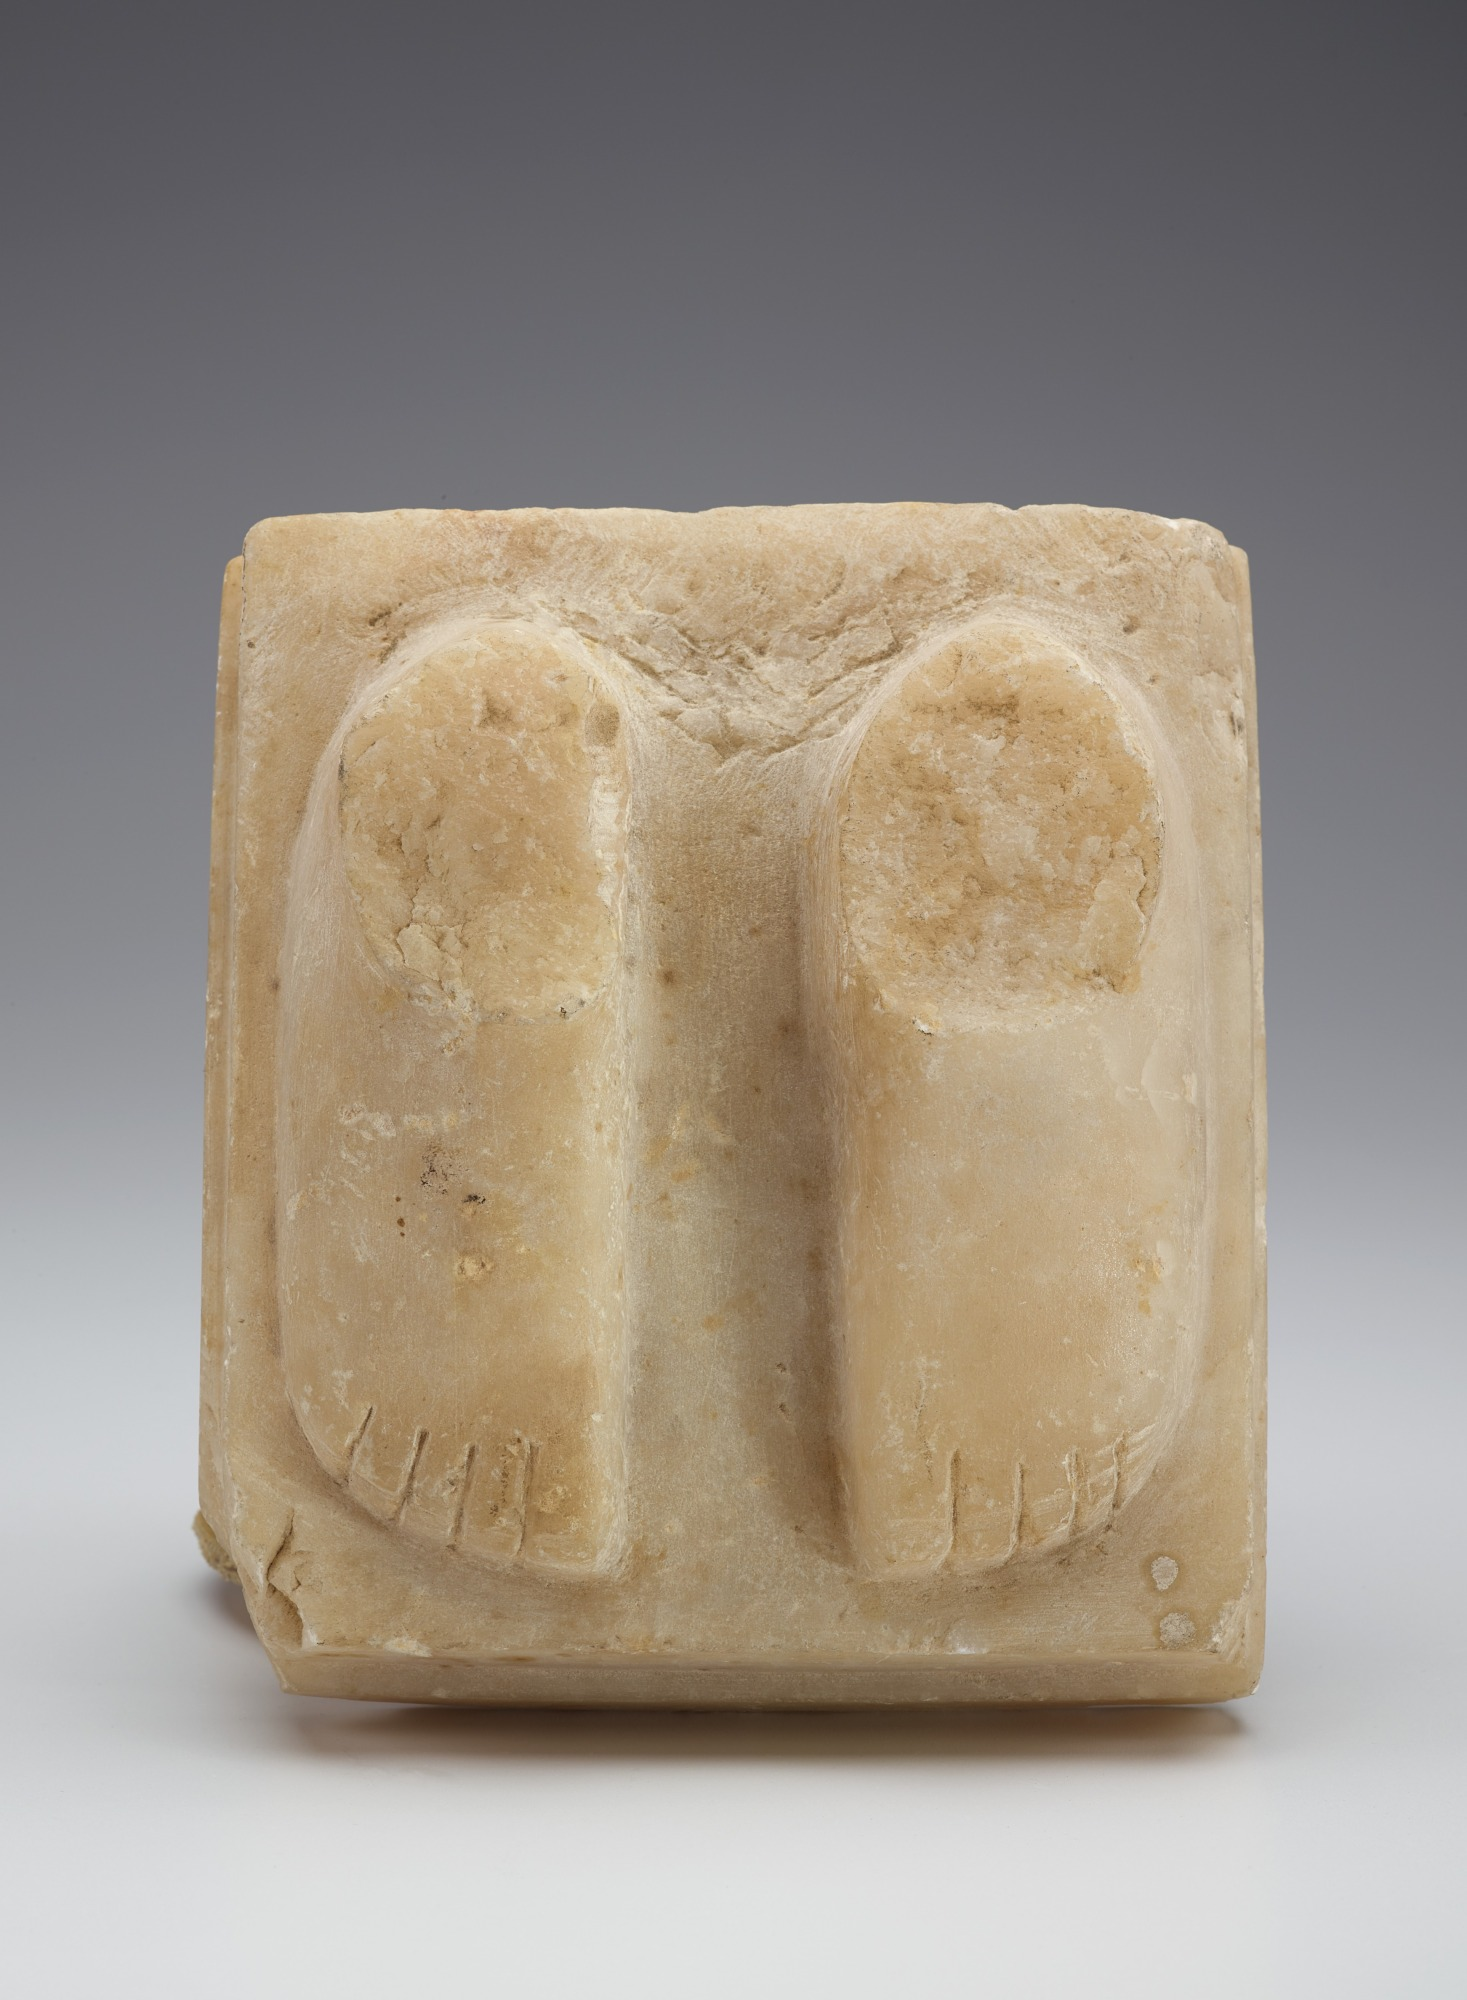 Stepped base with pair of feet from a figure, fragment